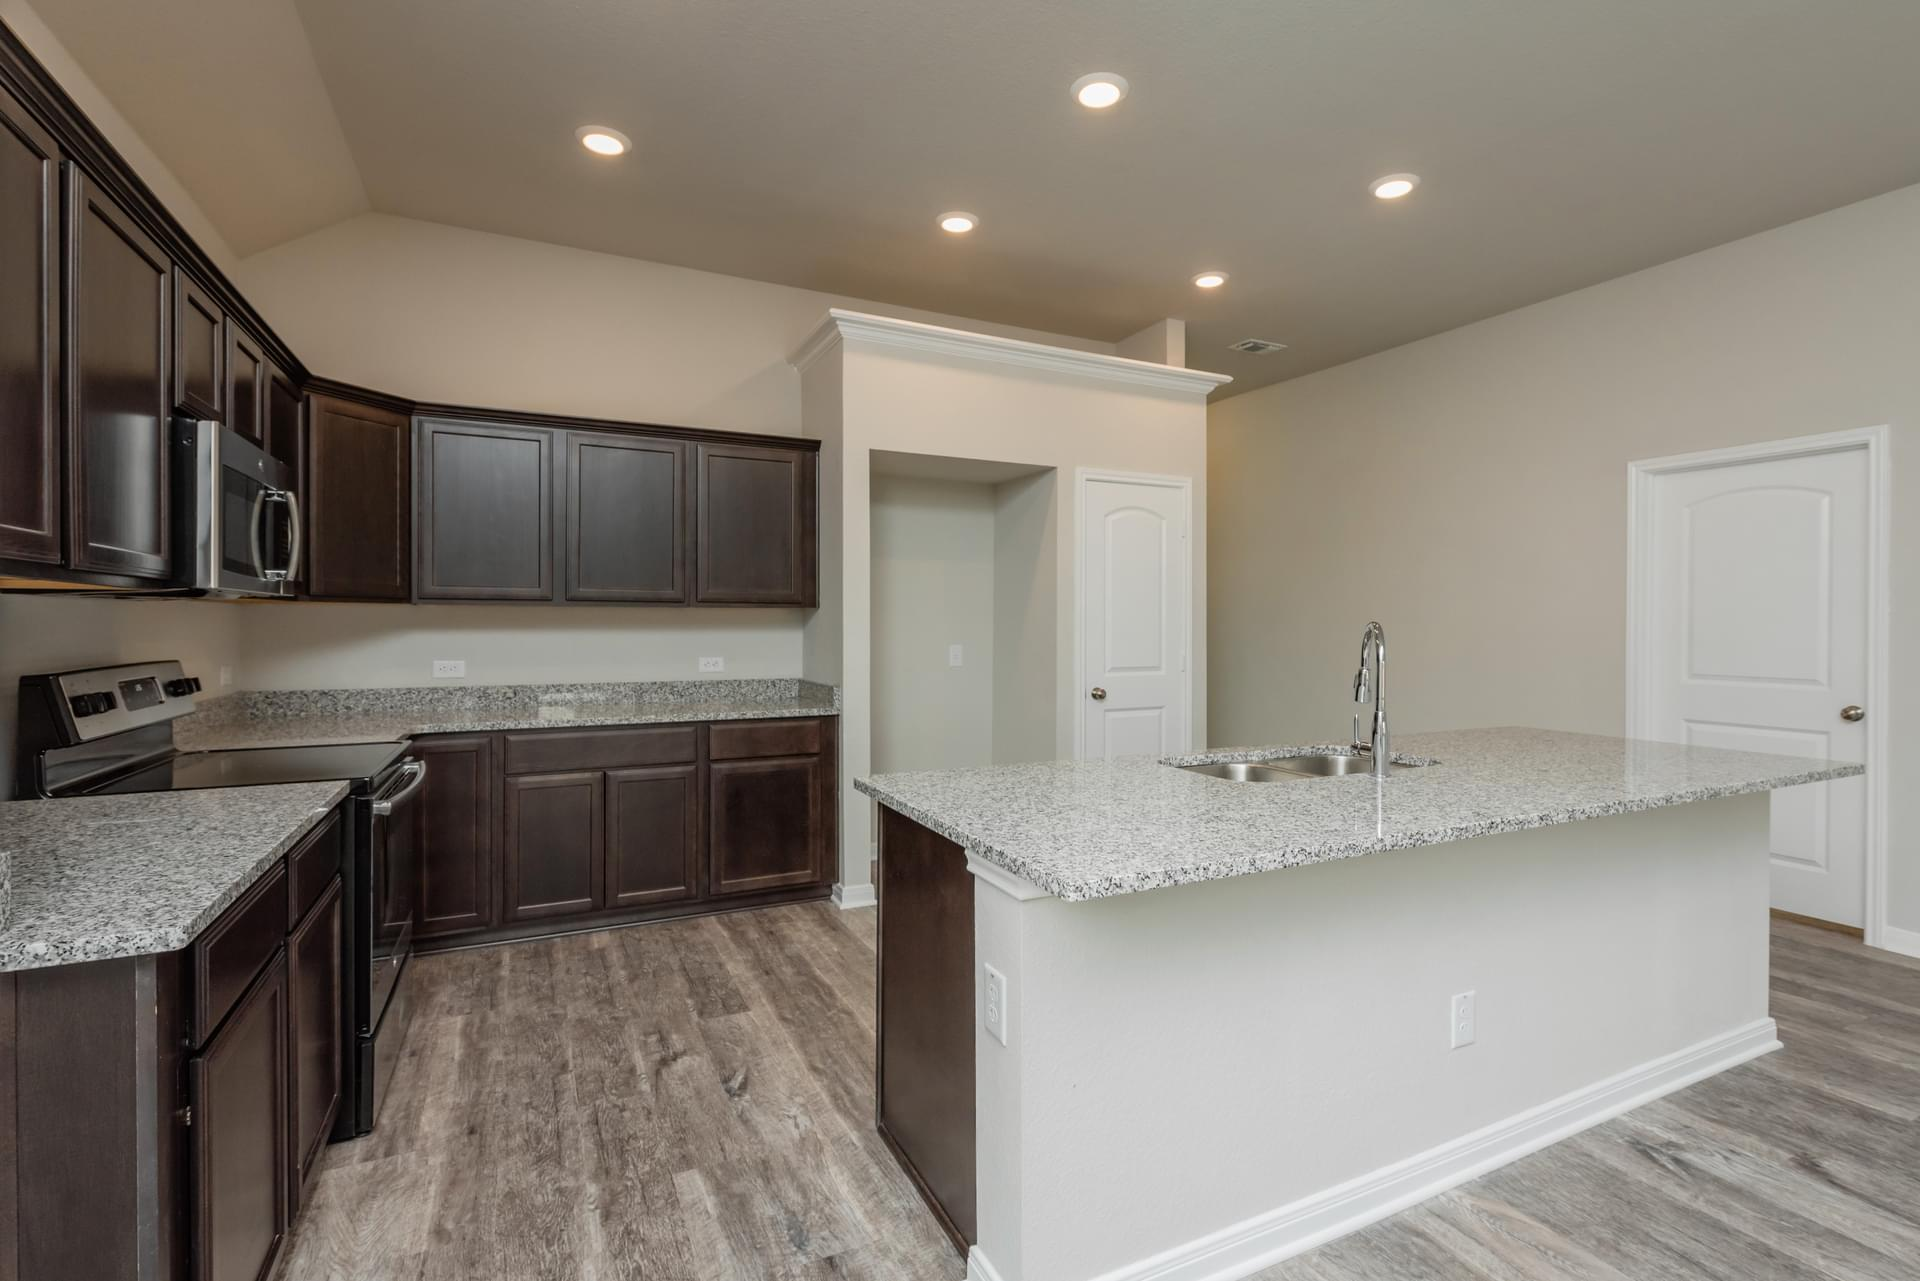 1,825sf New Home in Temple, TX